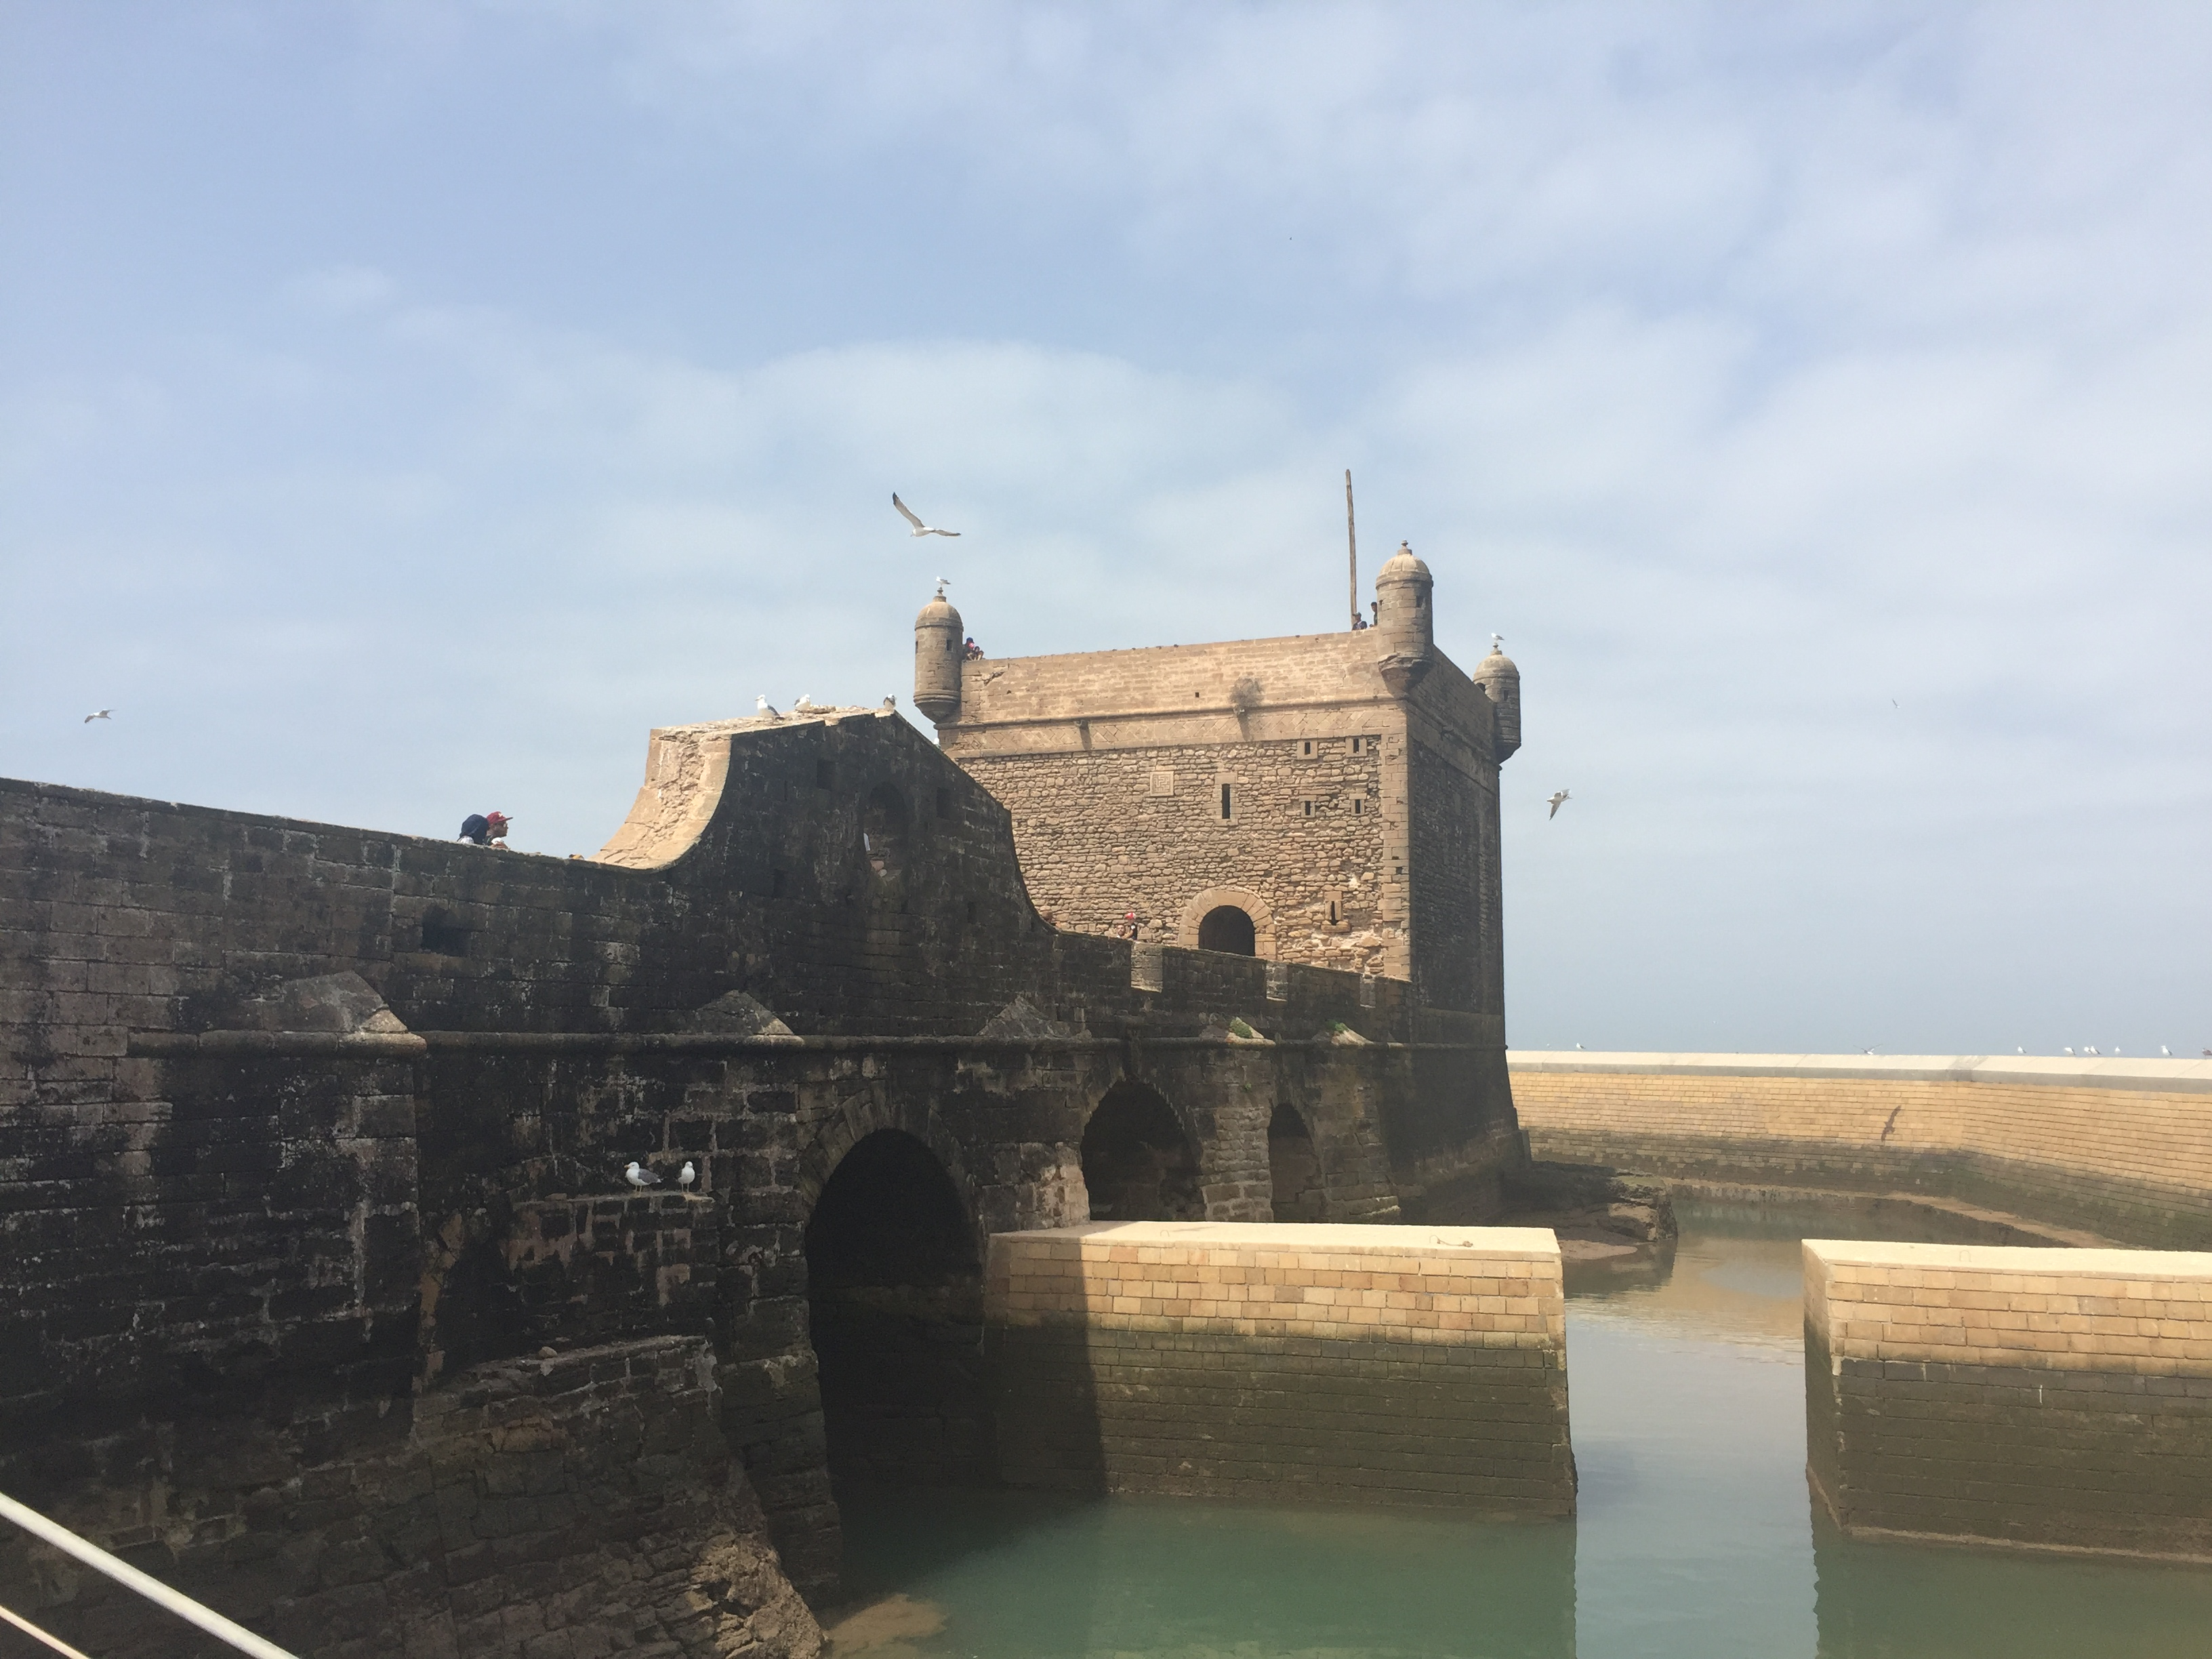 Essaouira Part Two – The Surreal Day Continues